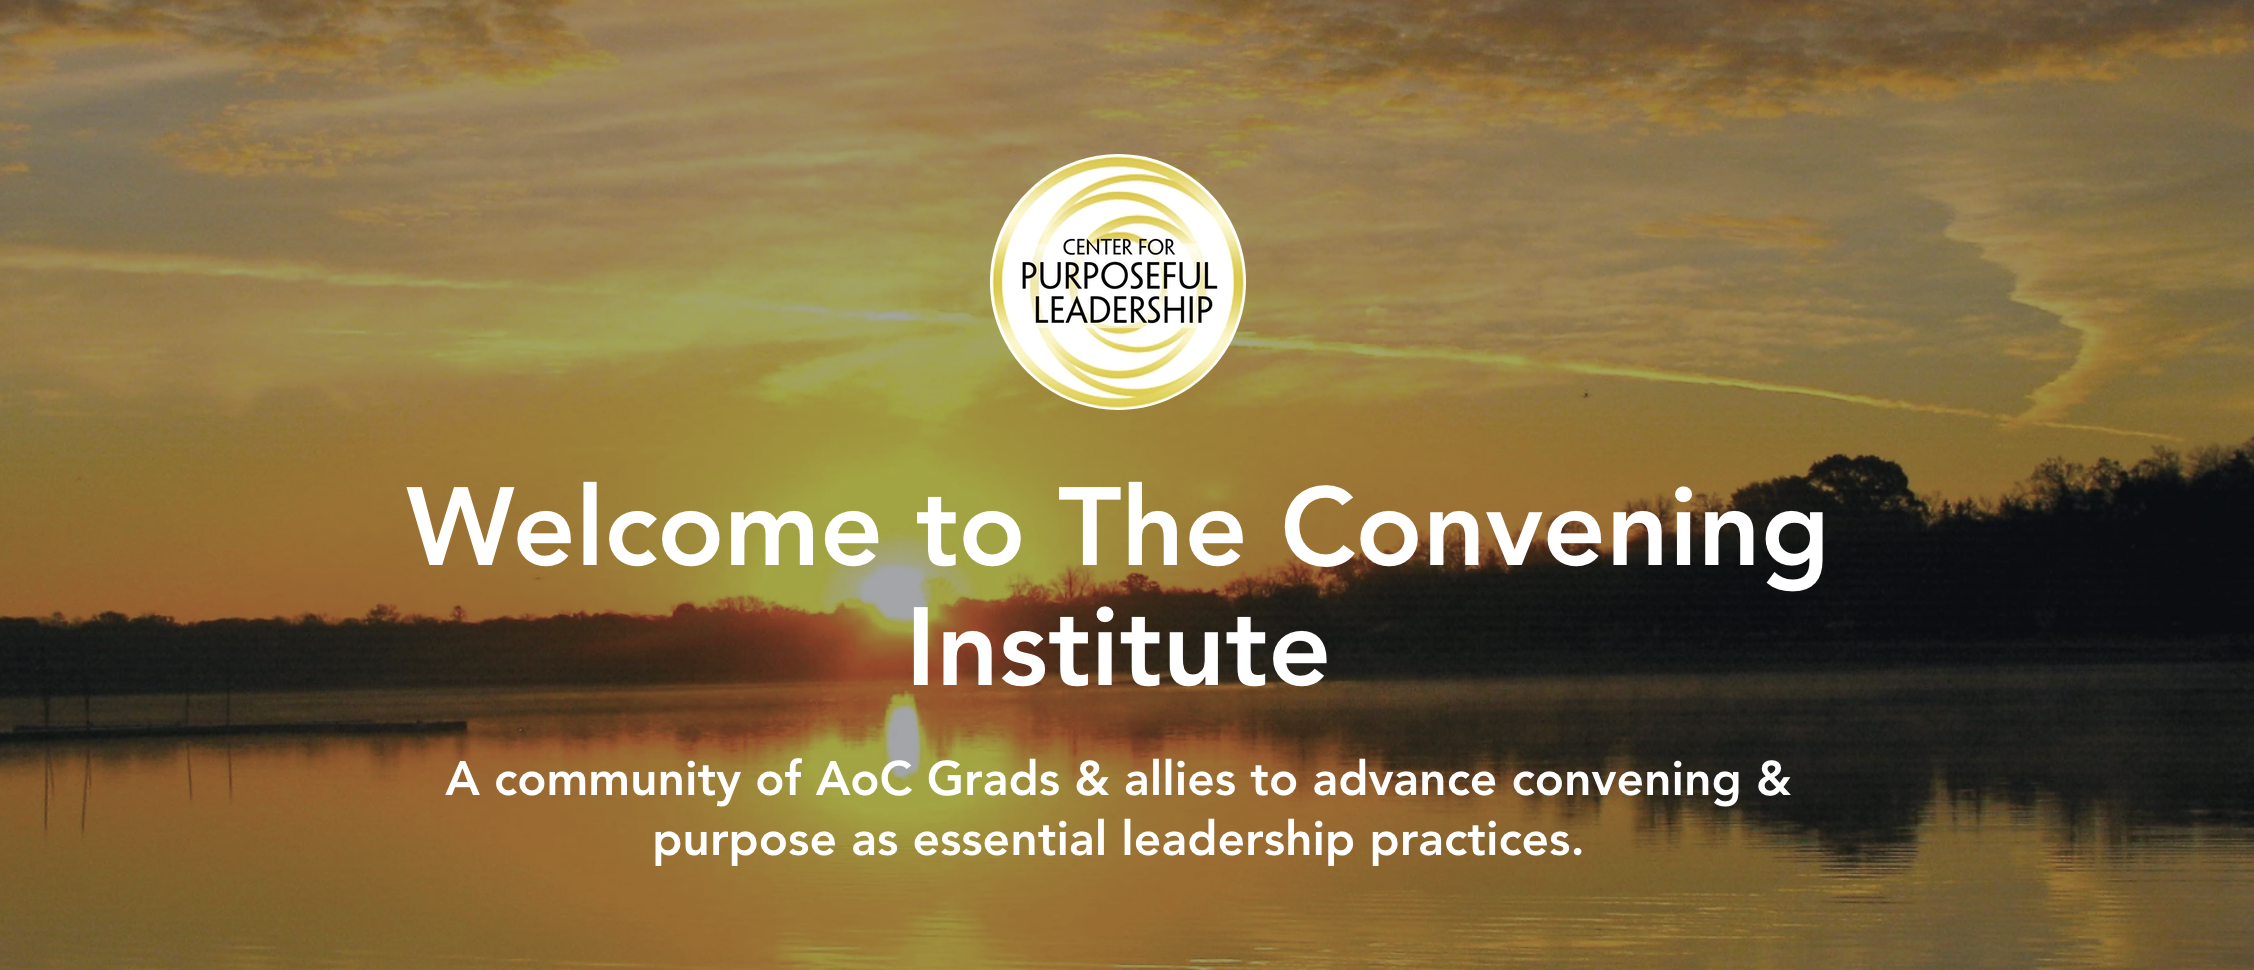 The Convening Institute.png